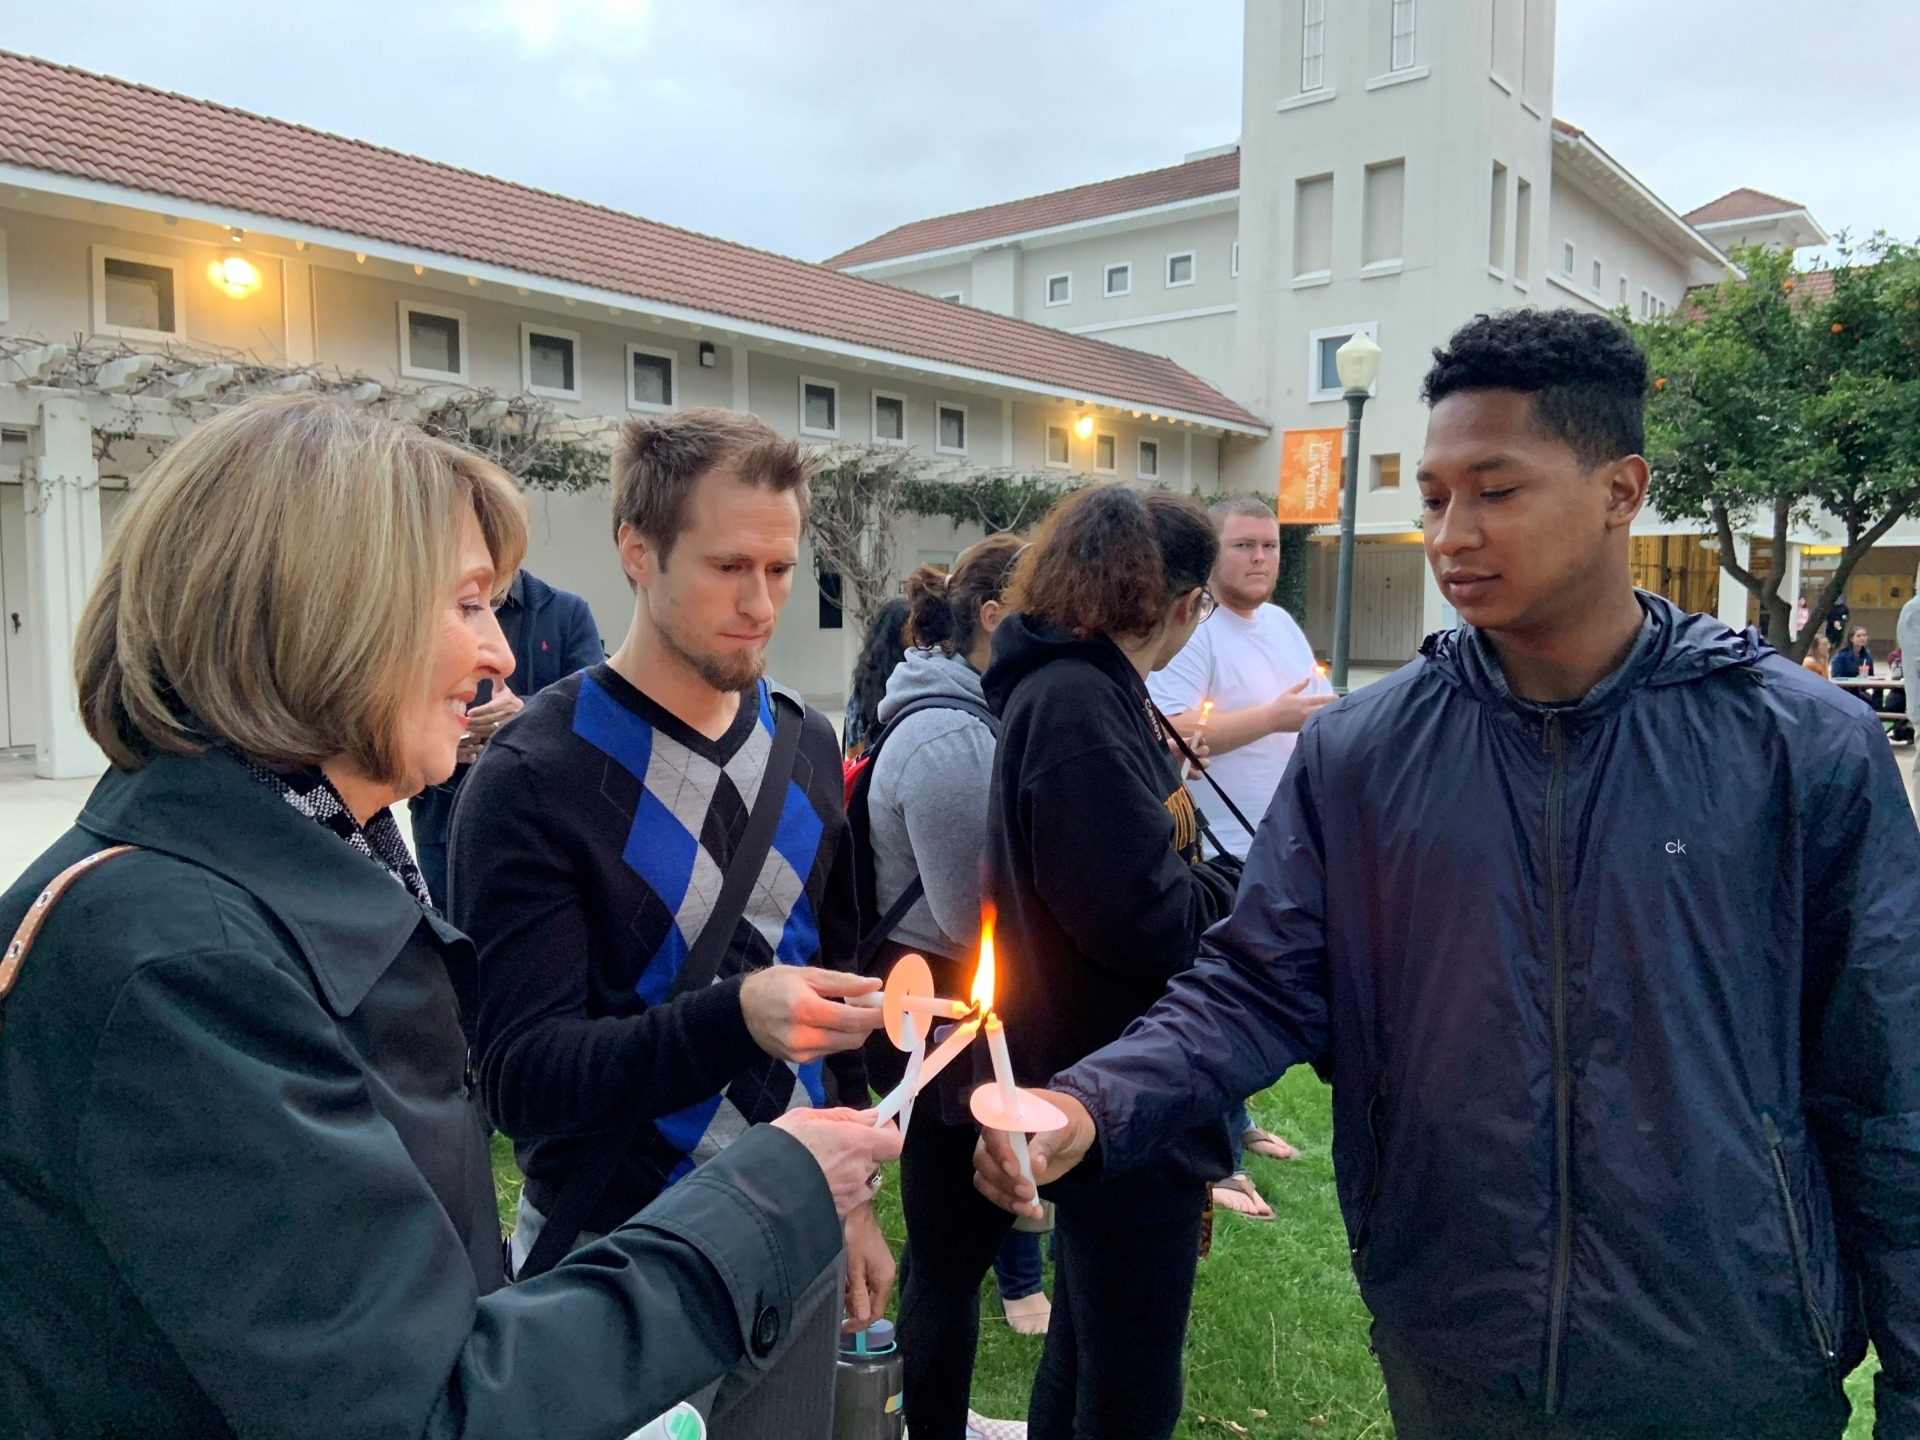 Students gather to light candles during vigil